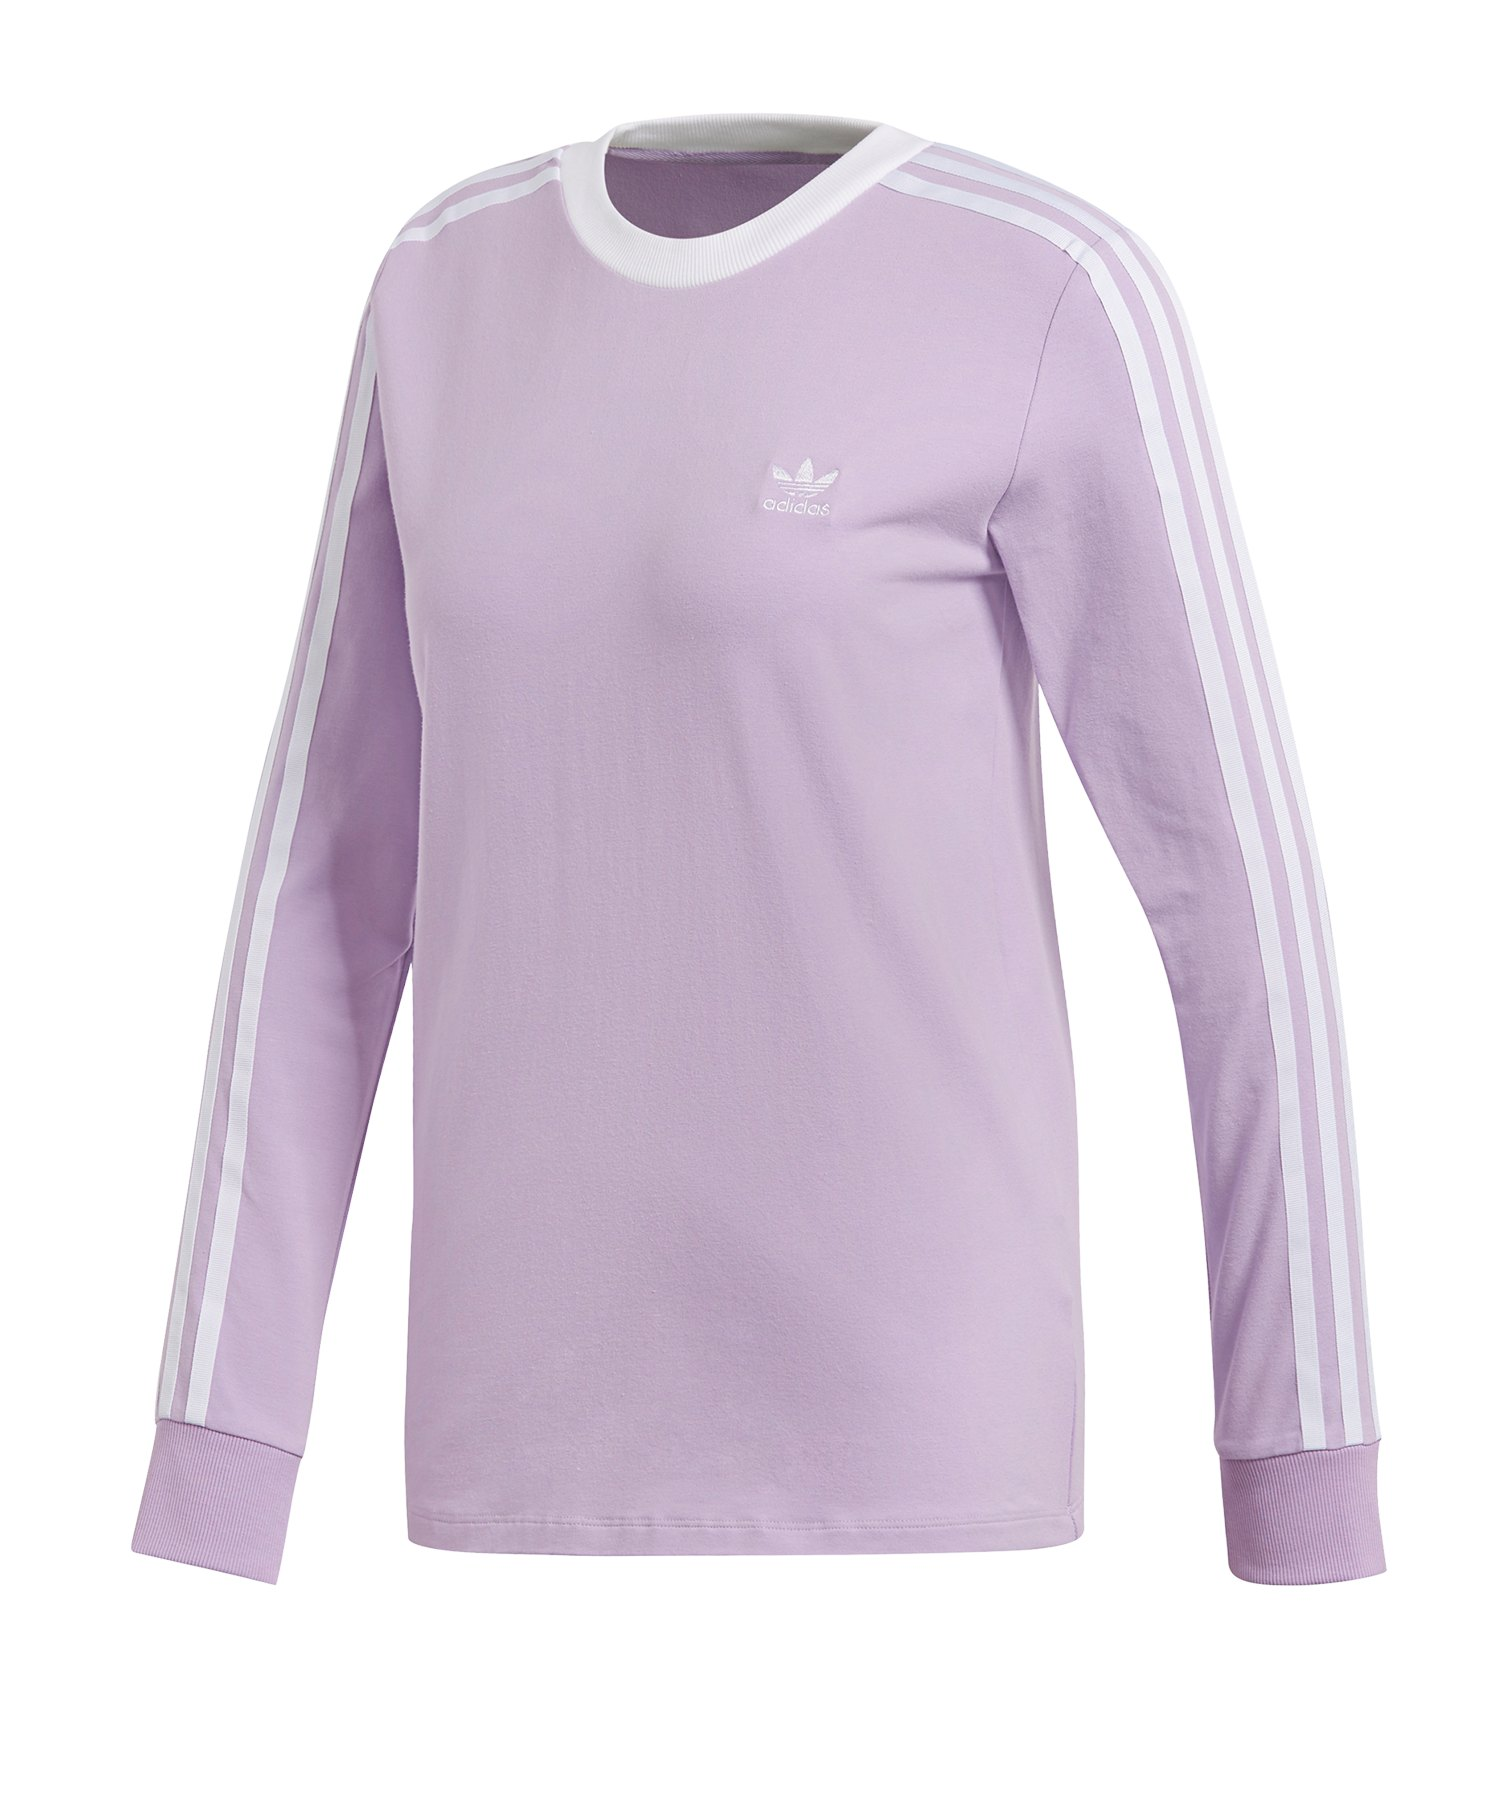 ff16ce162b2bd adidas Originals 3 Stripes Sweatshirt Damen Lila |Lifestyle ...